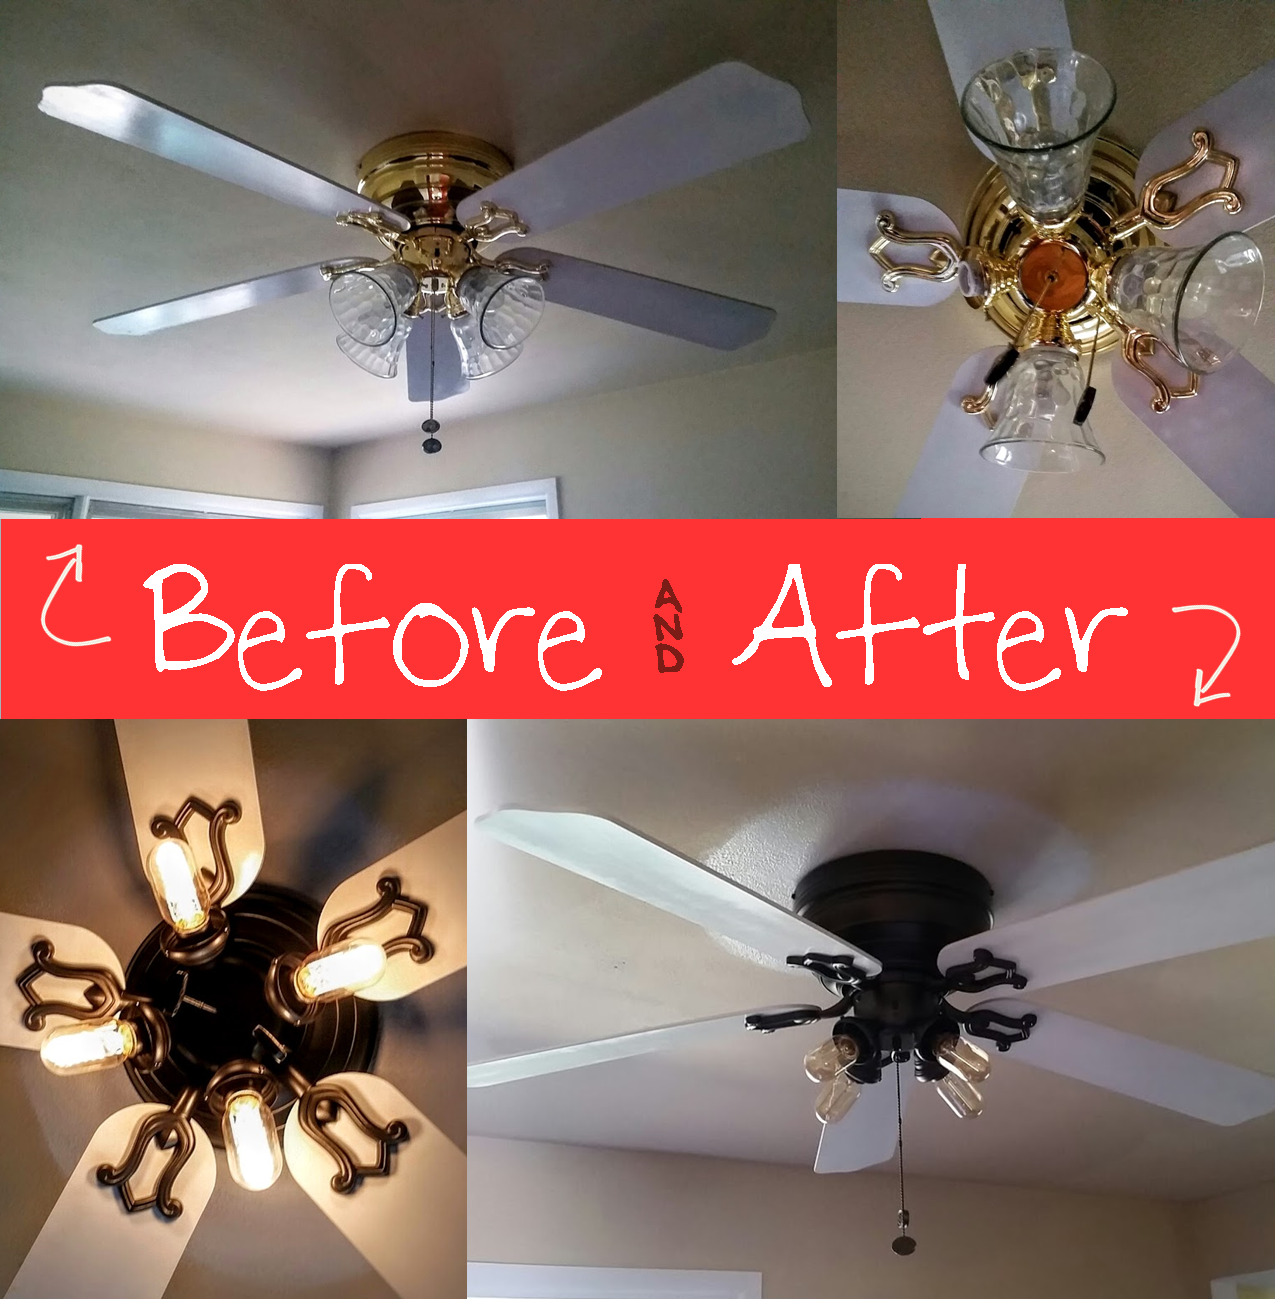 Ames reclaims dining room update goodbye brass ceiling fan we may continue playing with it and if i come up with something better i will be sure to post an update what do you think about it mozeypictures Gallery